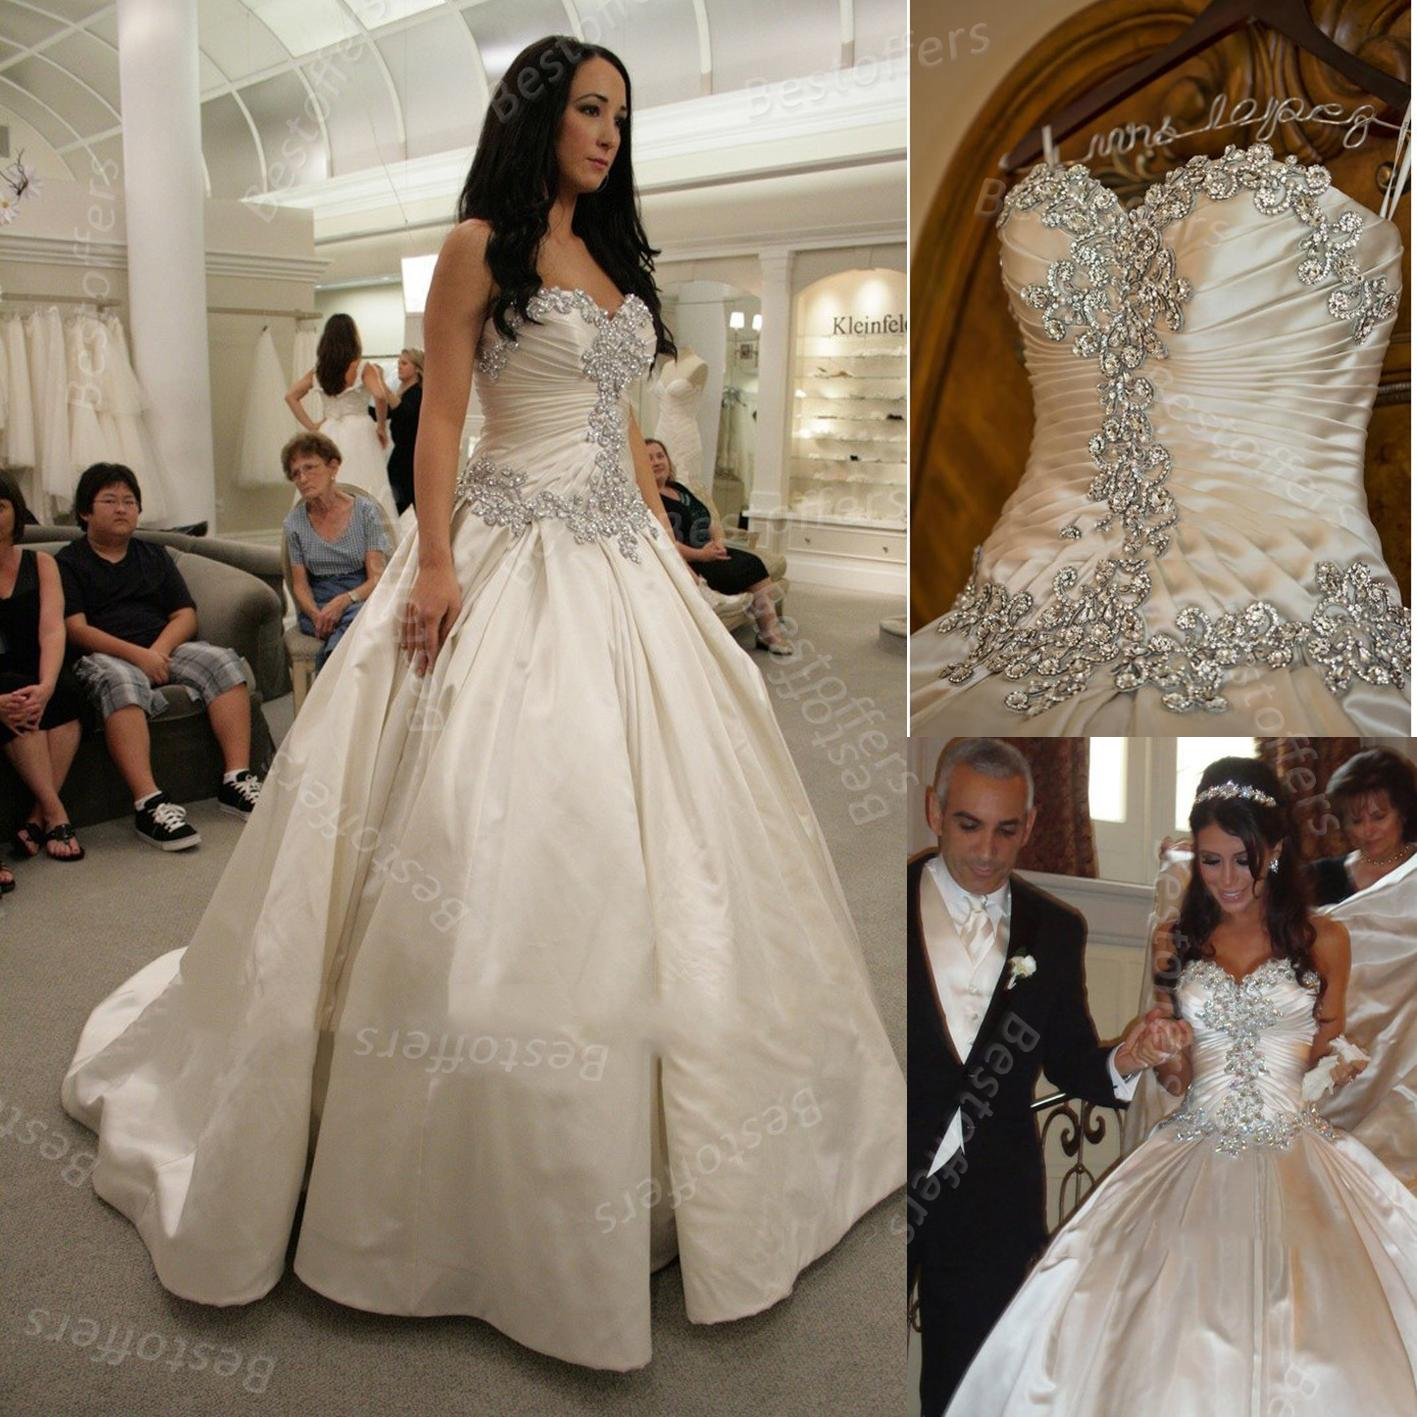 Floor Length Wedding Dress With Beads And Crystals Fitted On The